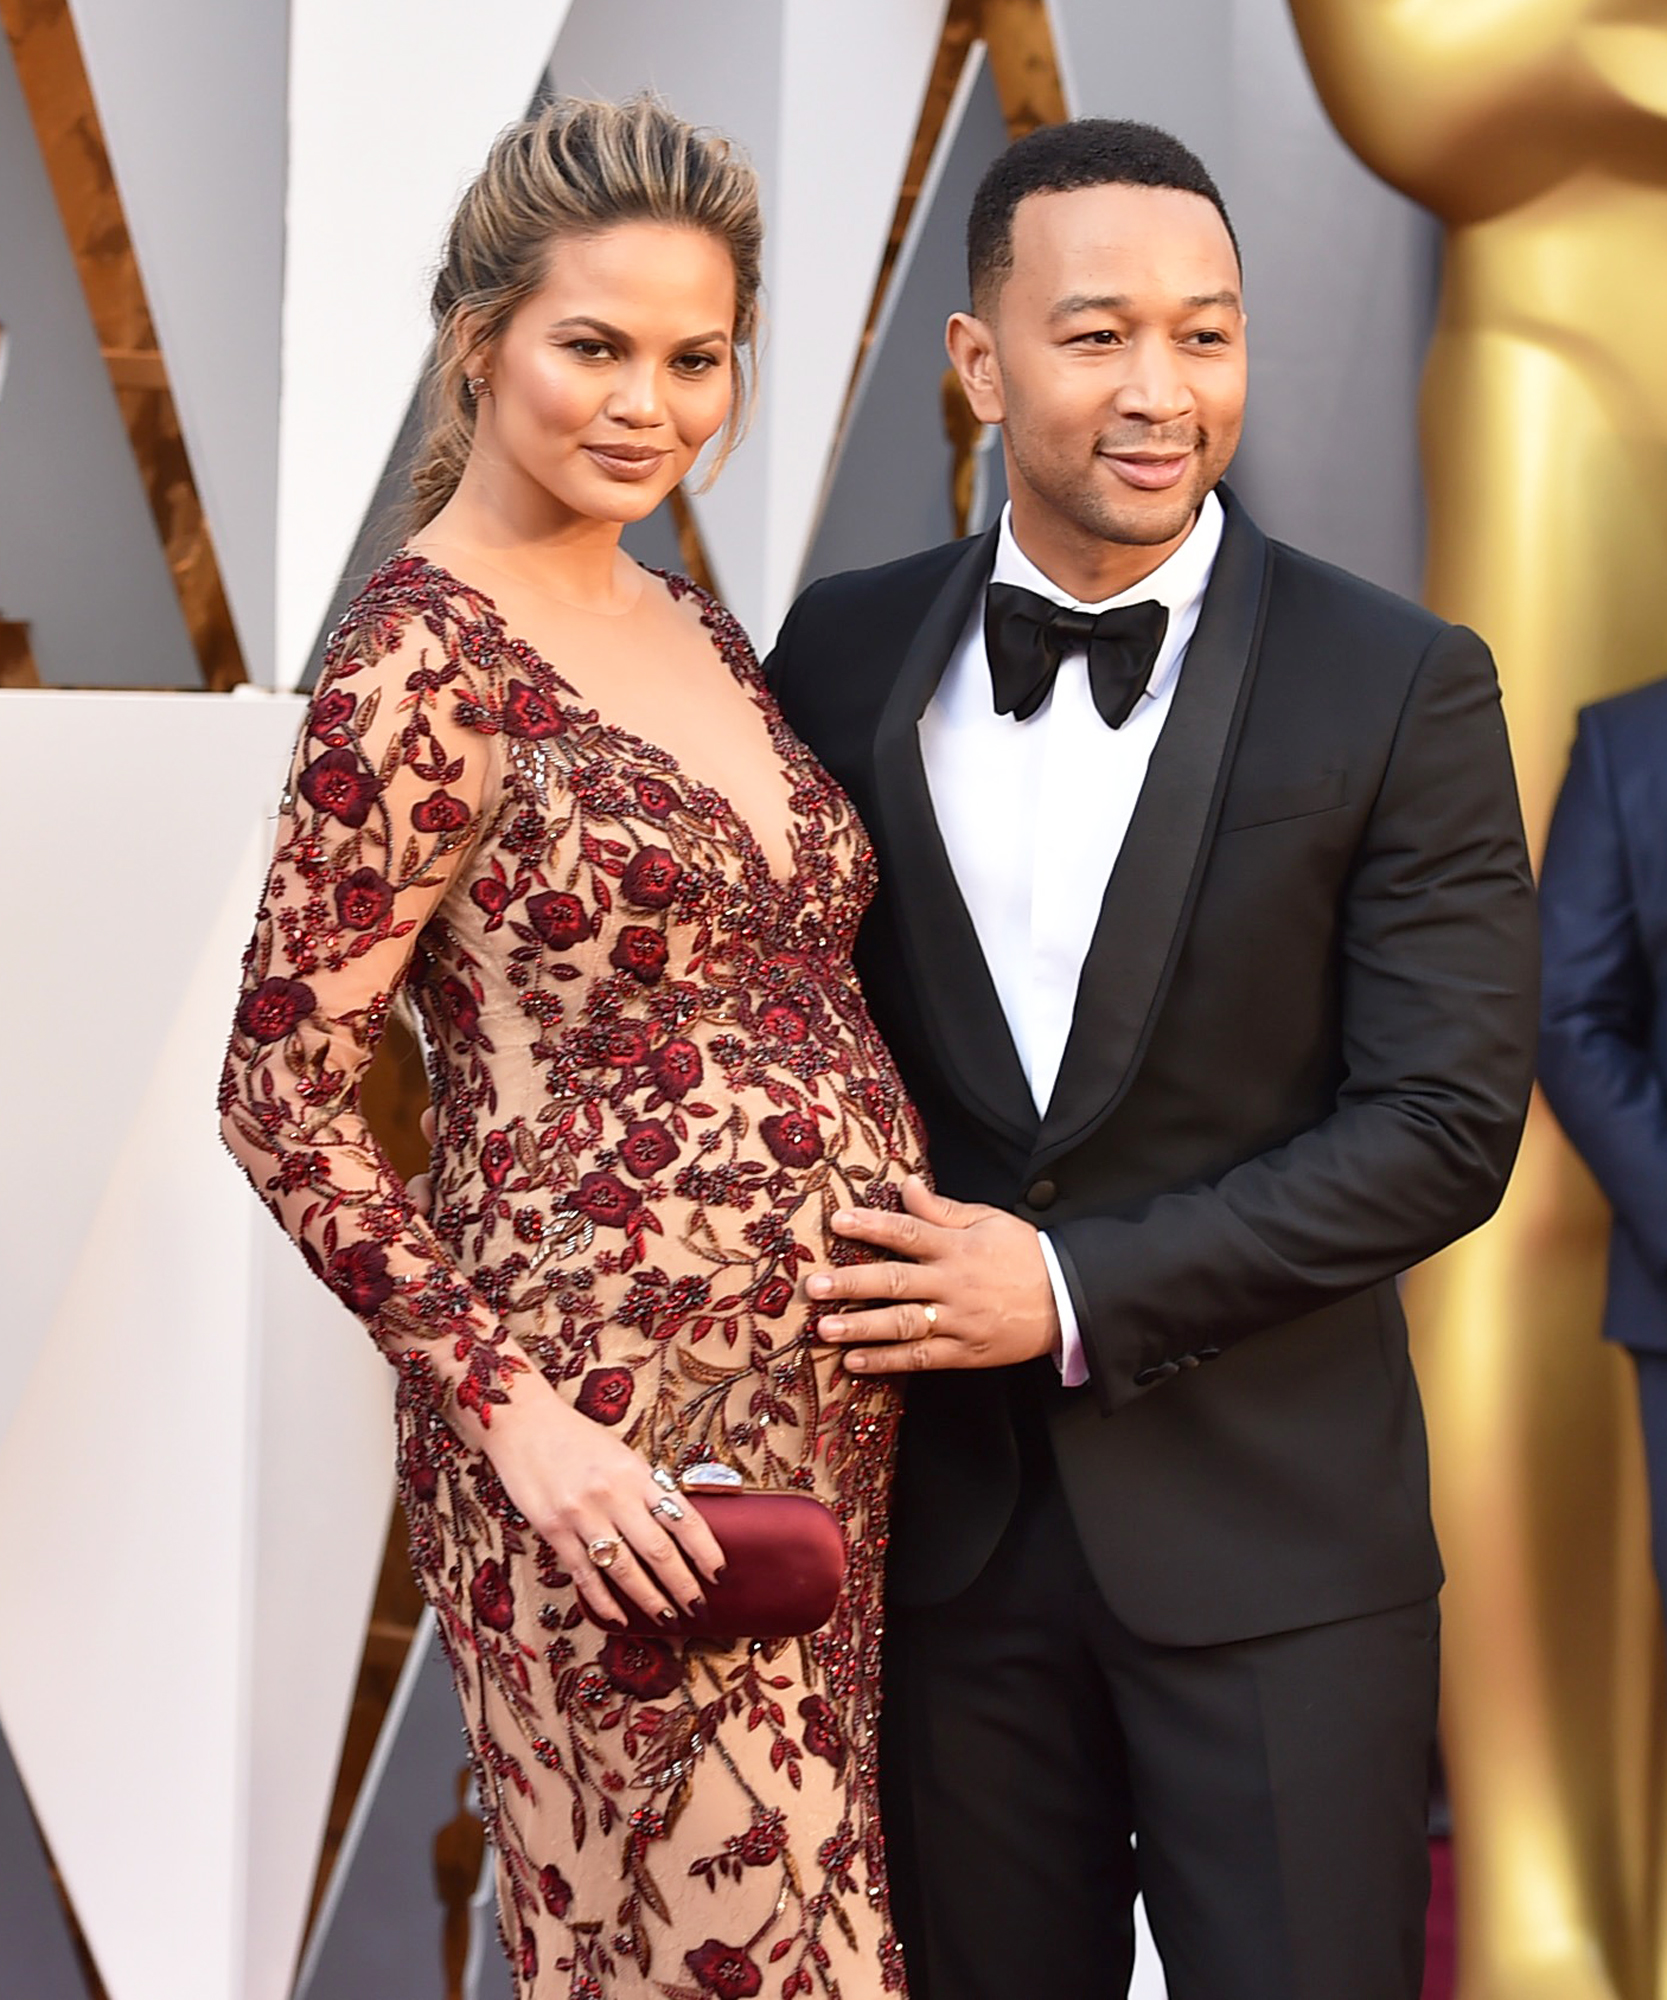 Chrissy Teigen and John Legend Have an Adorable Date Night on the Oscars Red Carpet